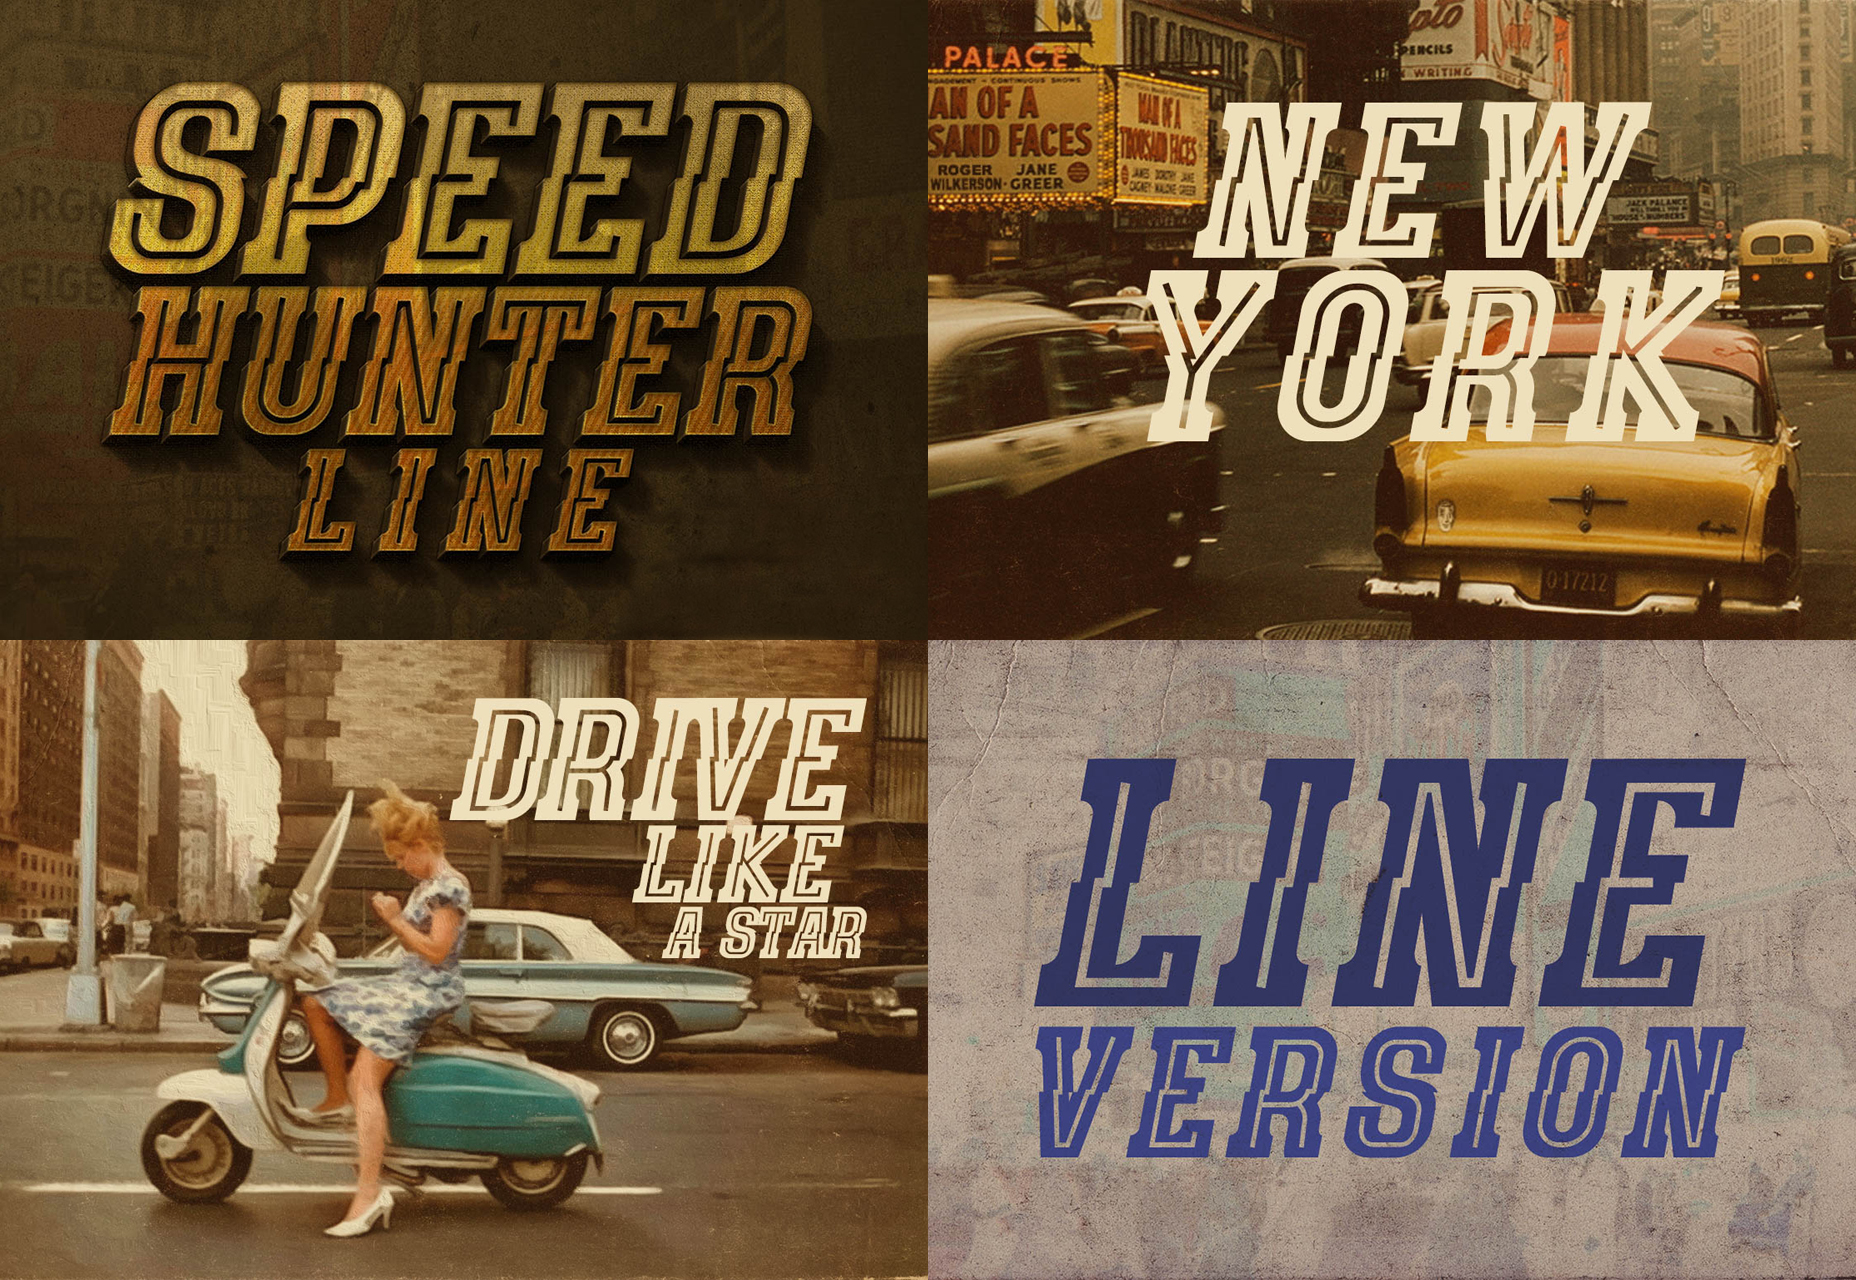 SpeedHunter: Vintage Central Line Fuente